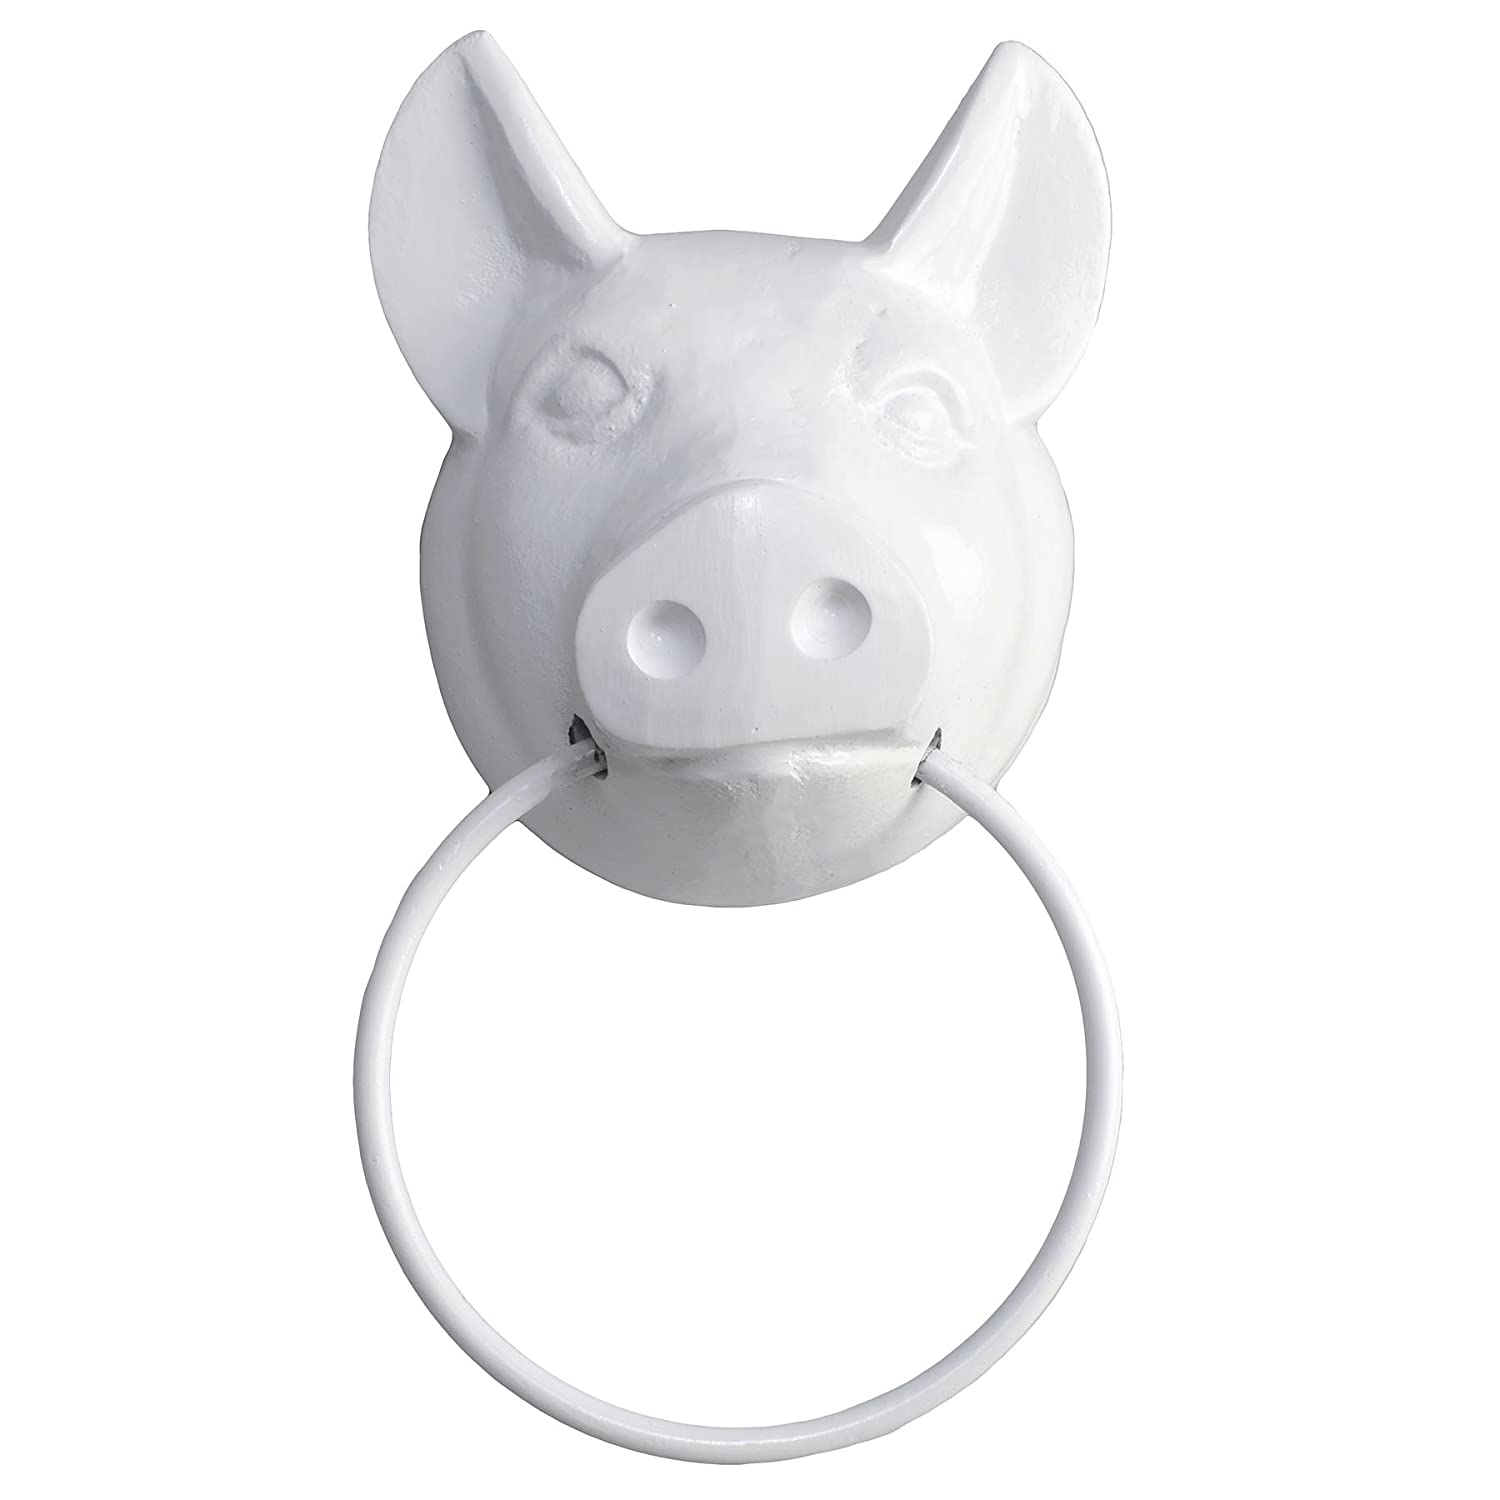 (White Gloss) Studio Vertu Cast Iron Pig Towel Ring, White Gloss B00L9BEJQA ホワイトグロス ホワイトグロス